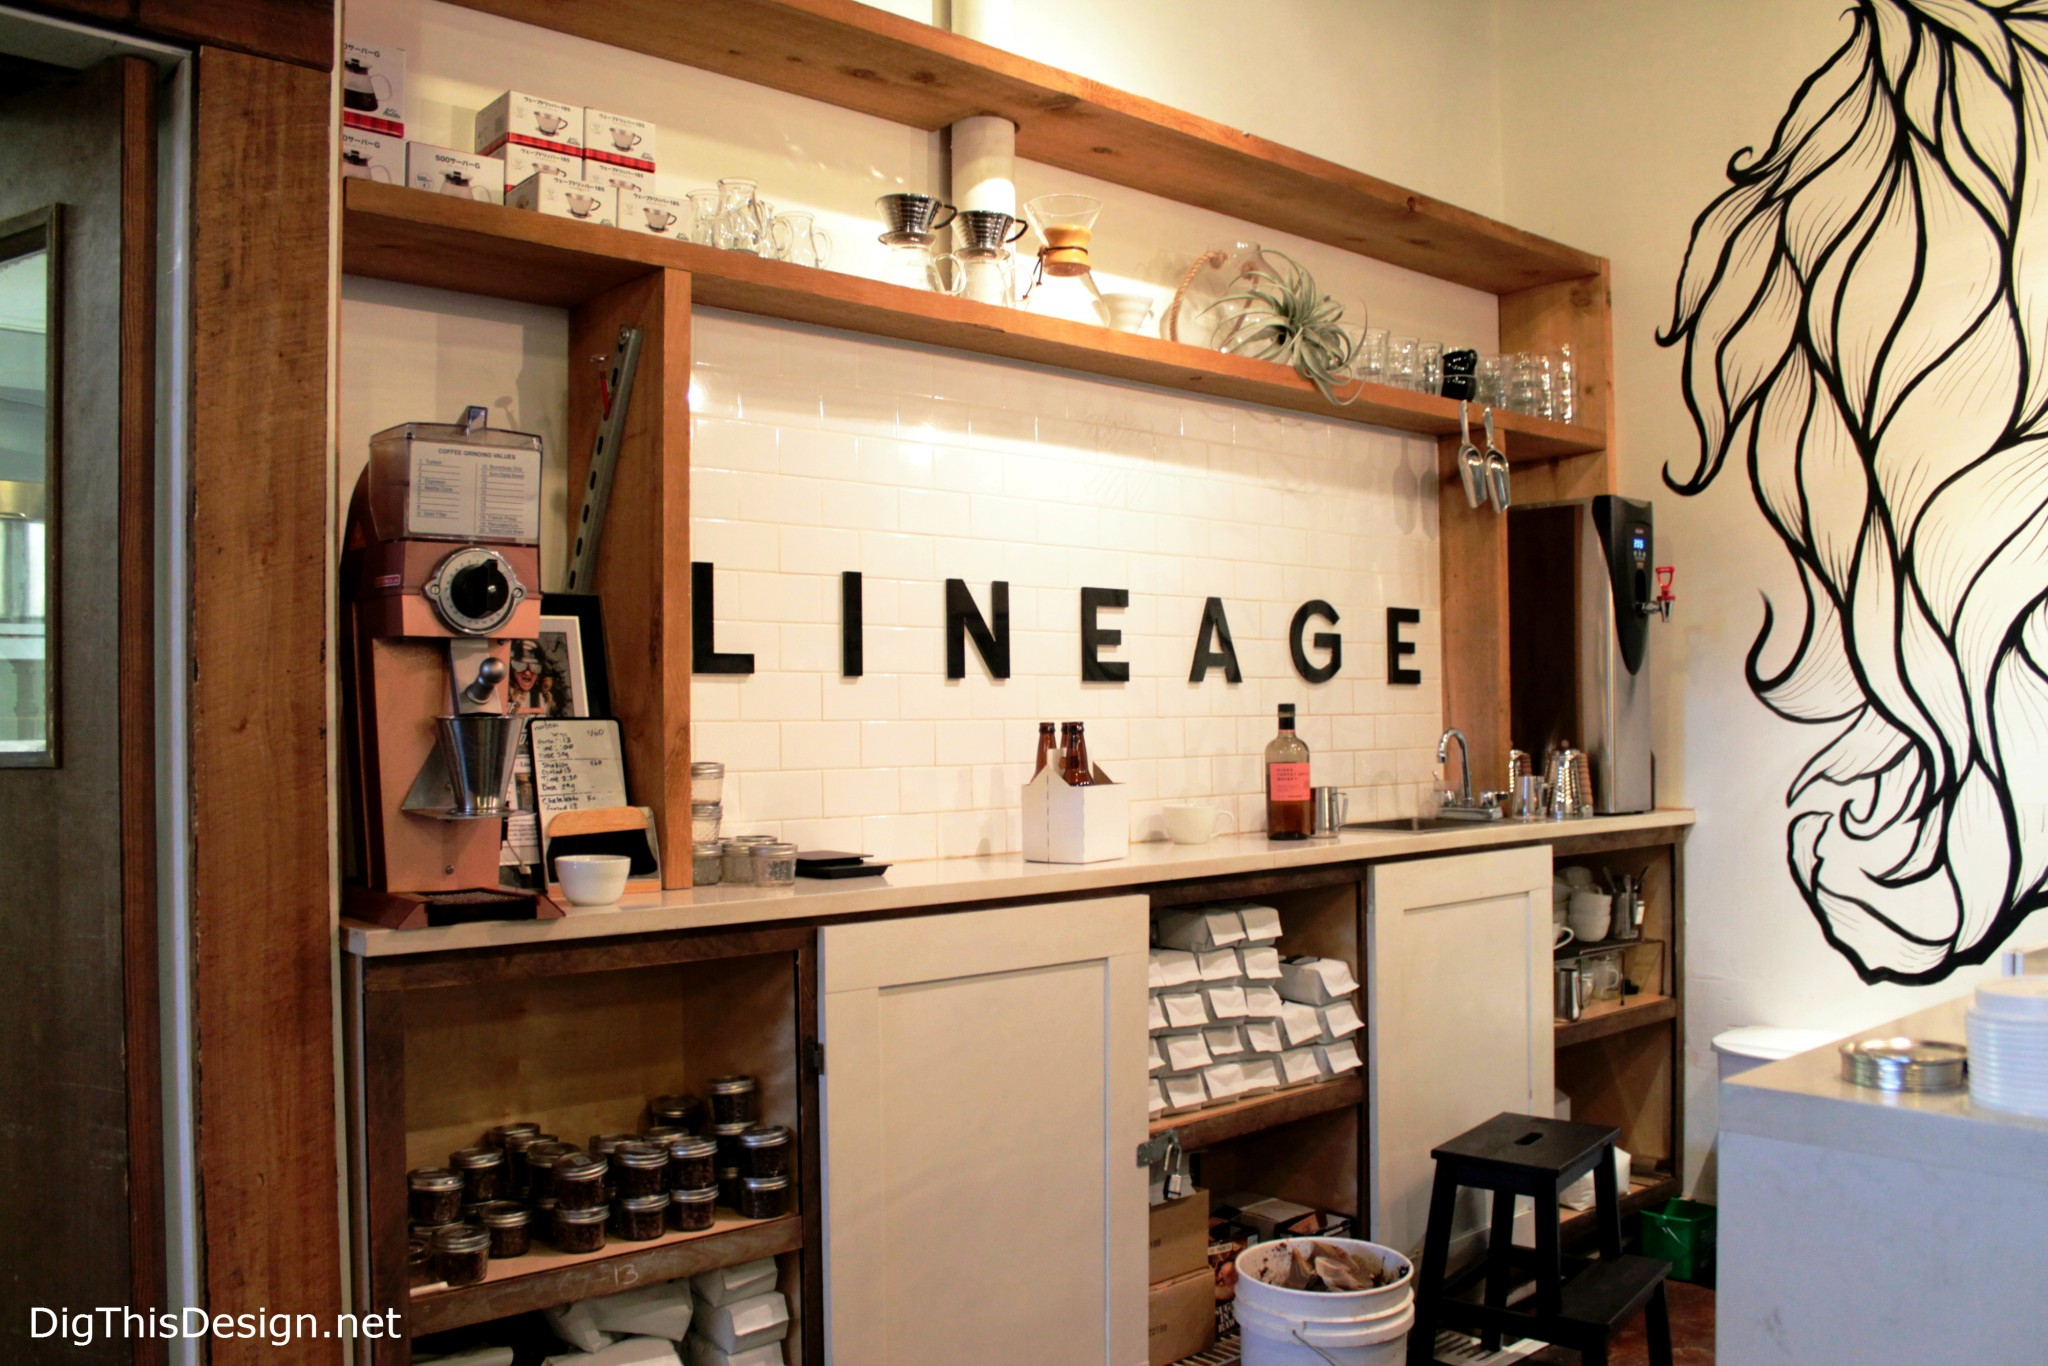 Lineage coffee roaster and shop at East End Market